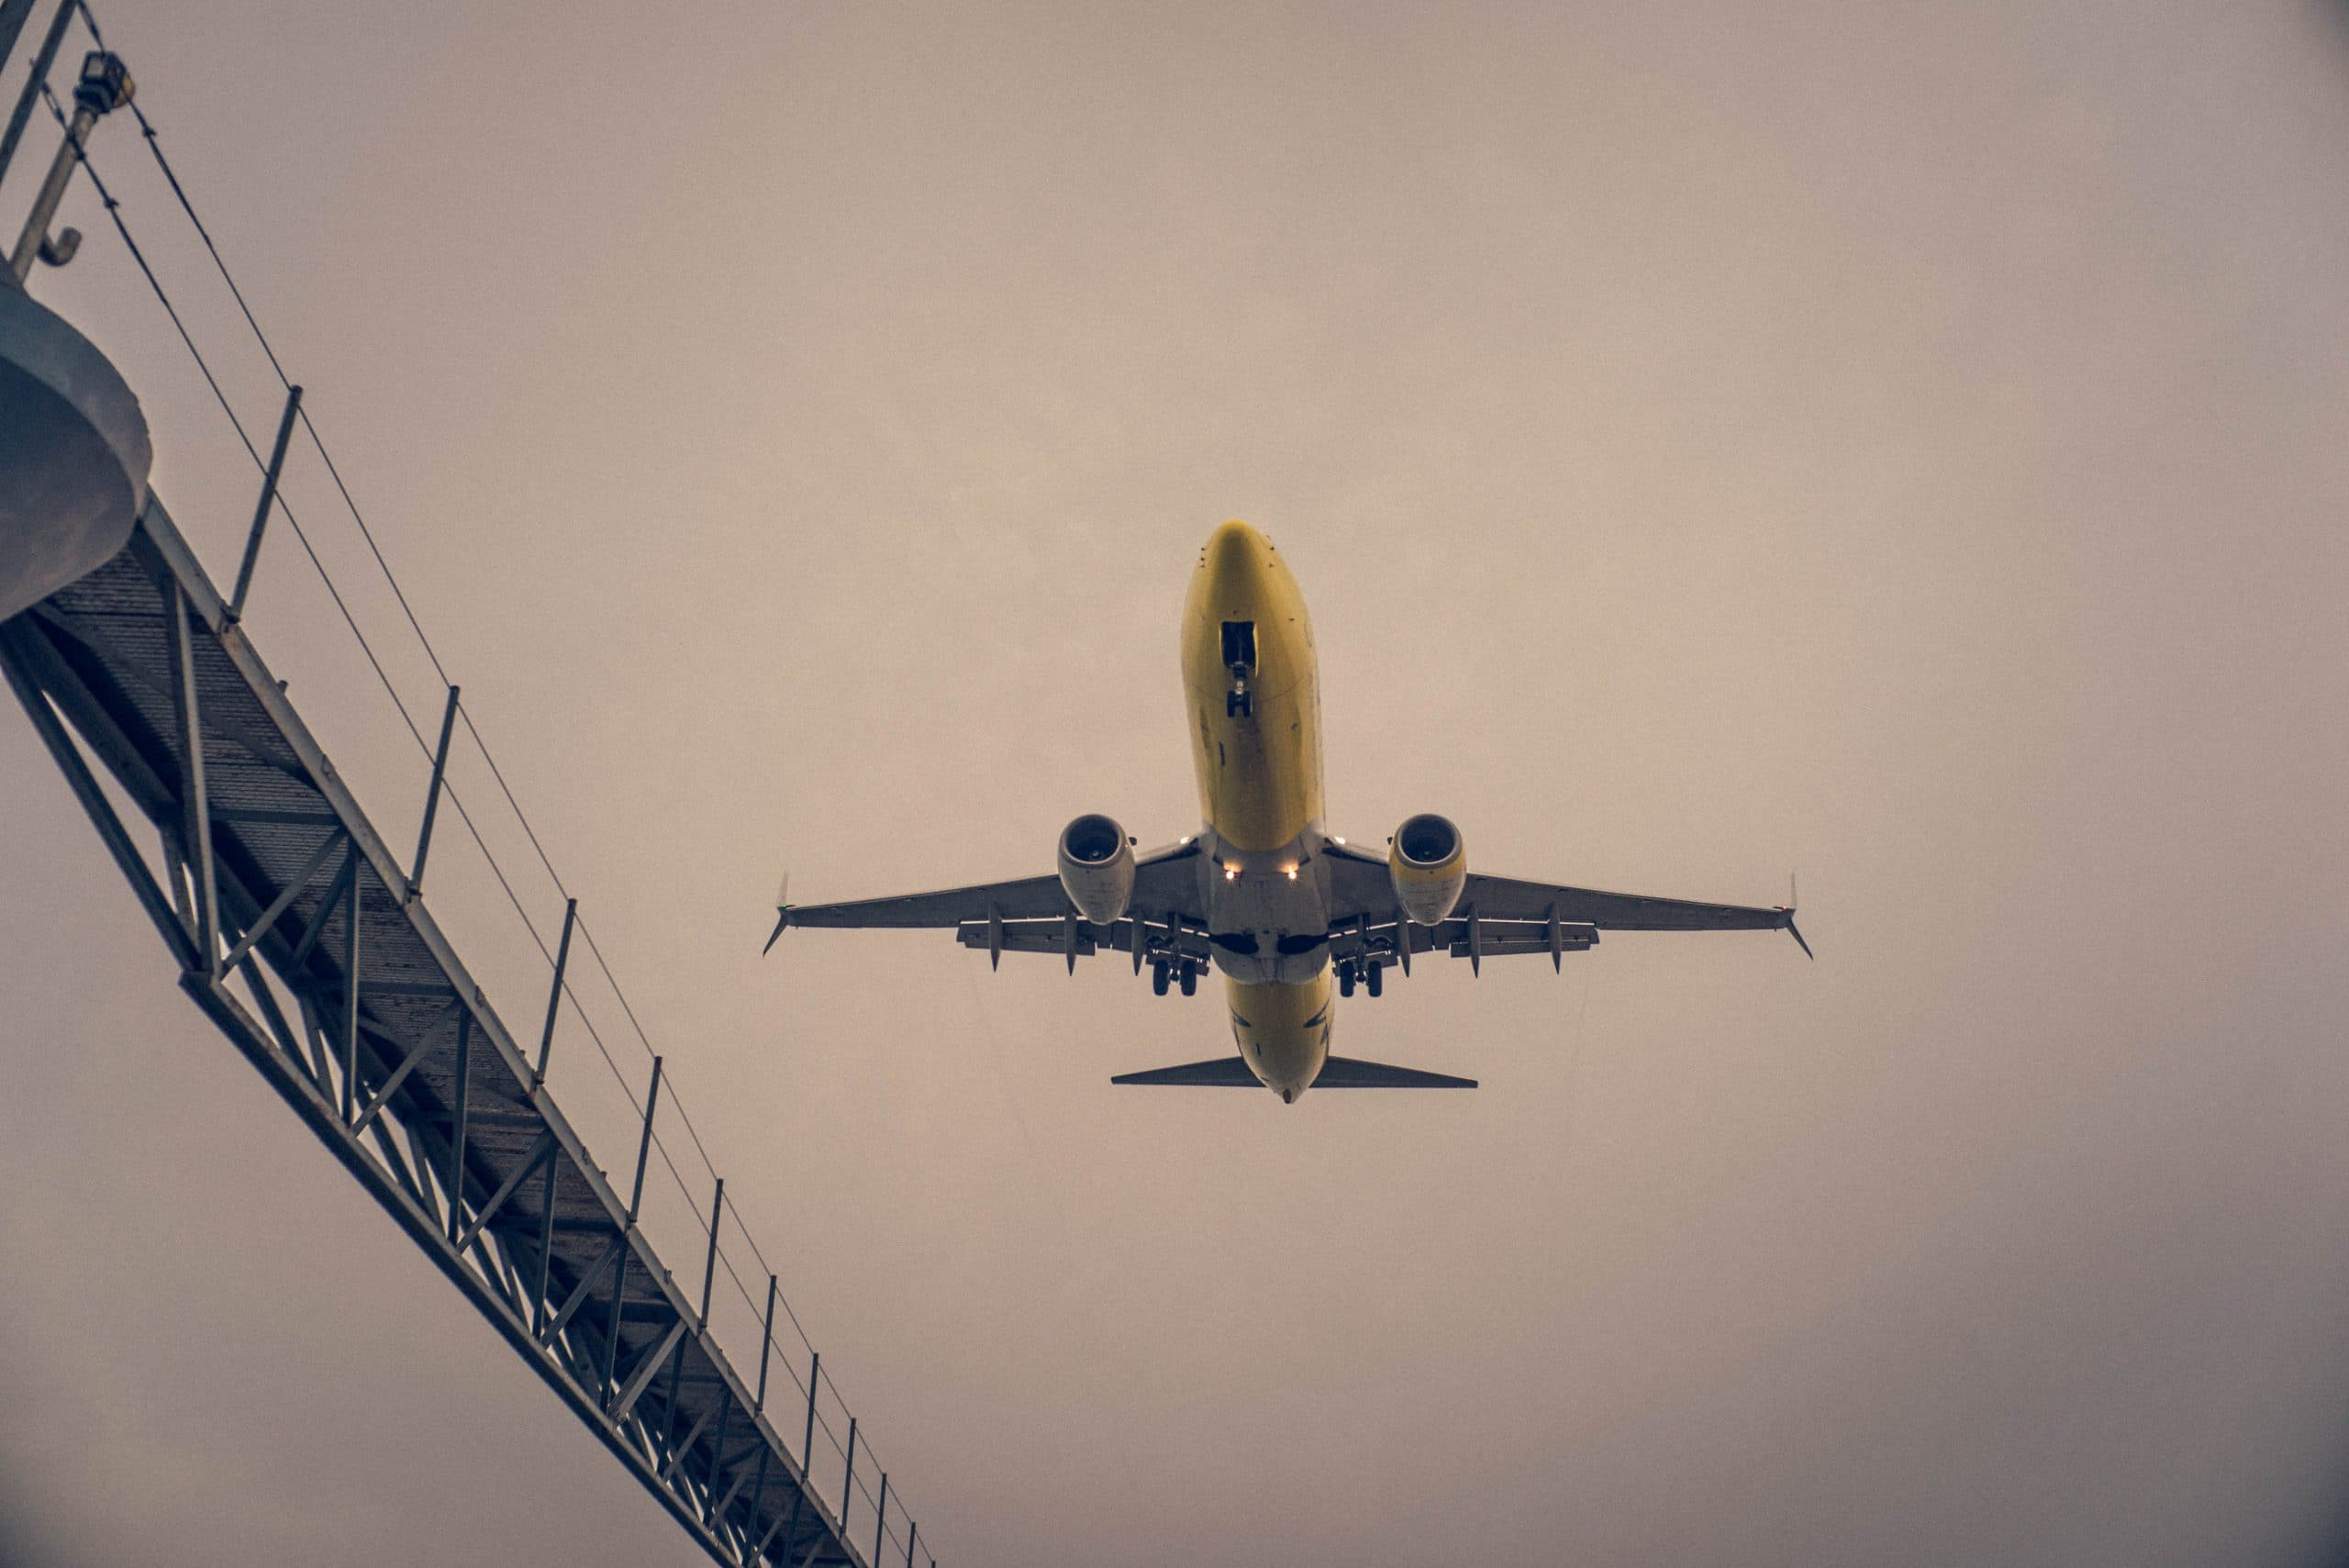 http://www.stgoodinsurance.com/uncategorized/what-you-need-to-know-about-aviation-insurance/